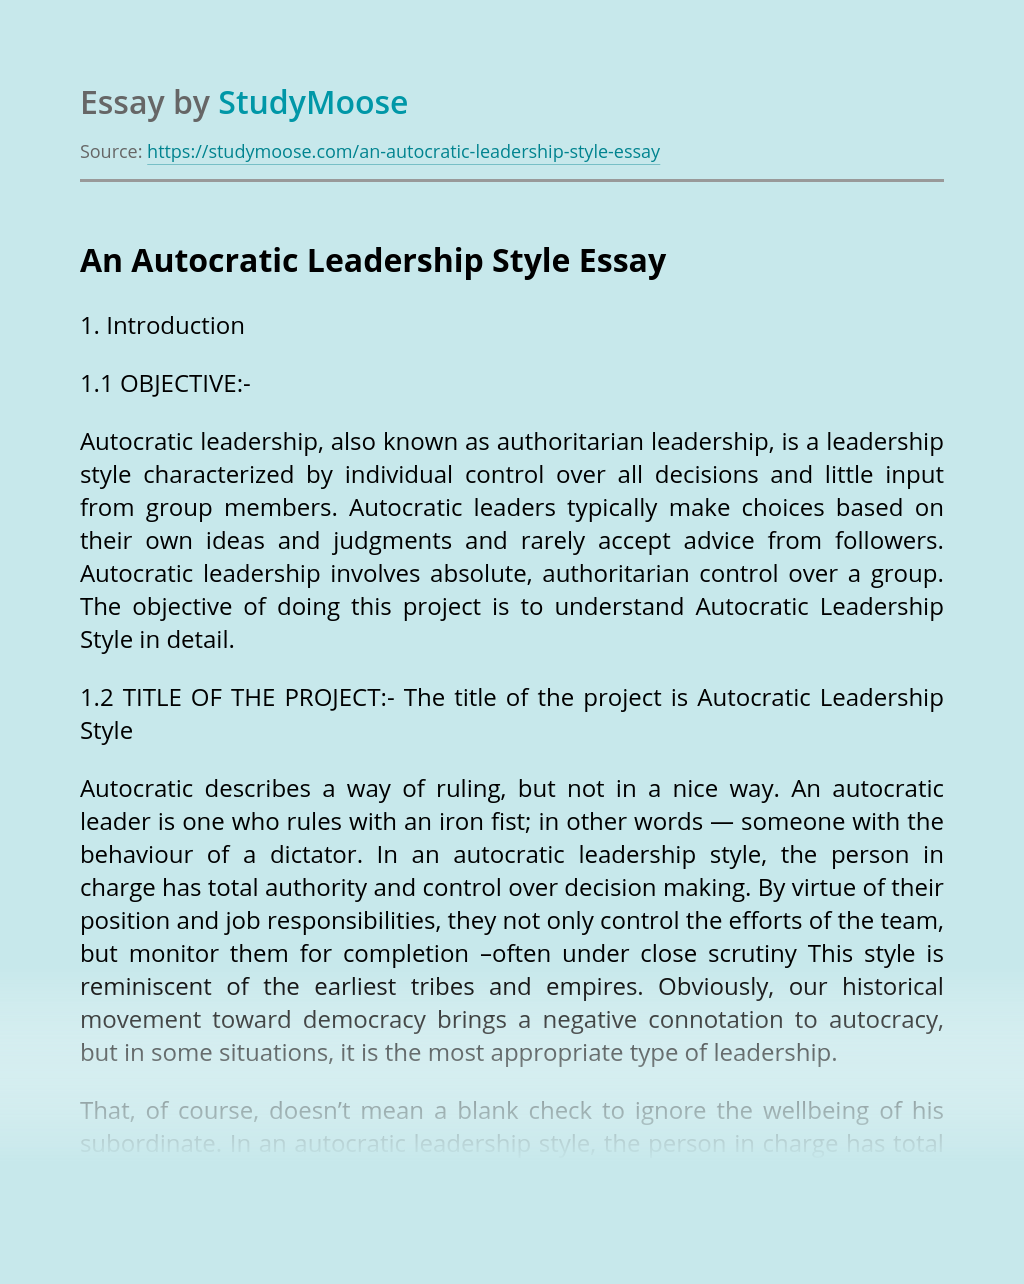 An Autocratic Leadership Style